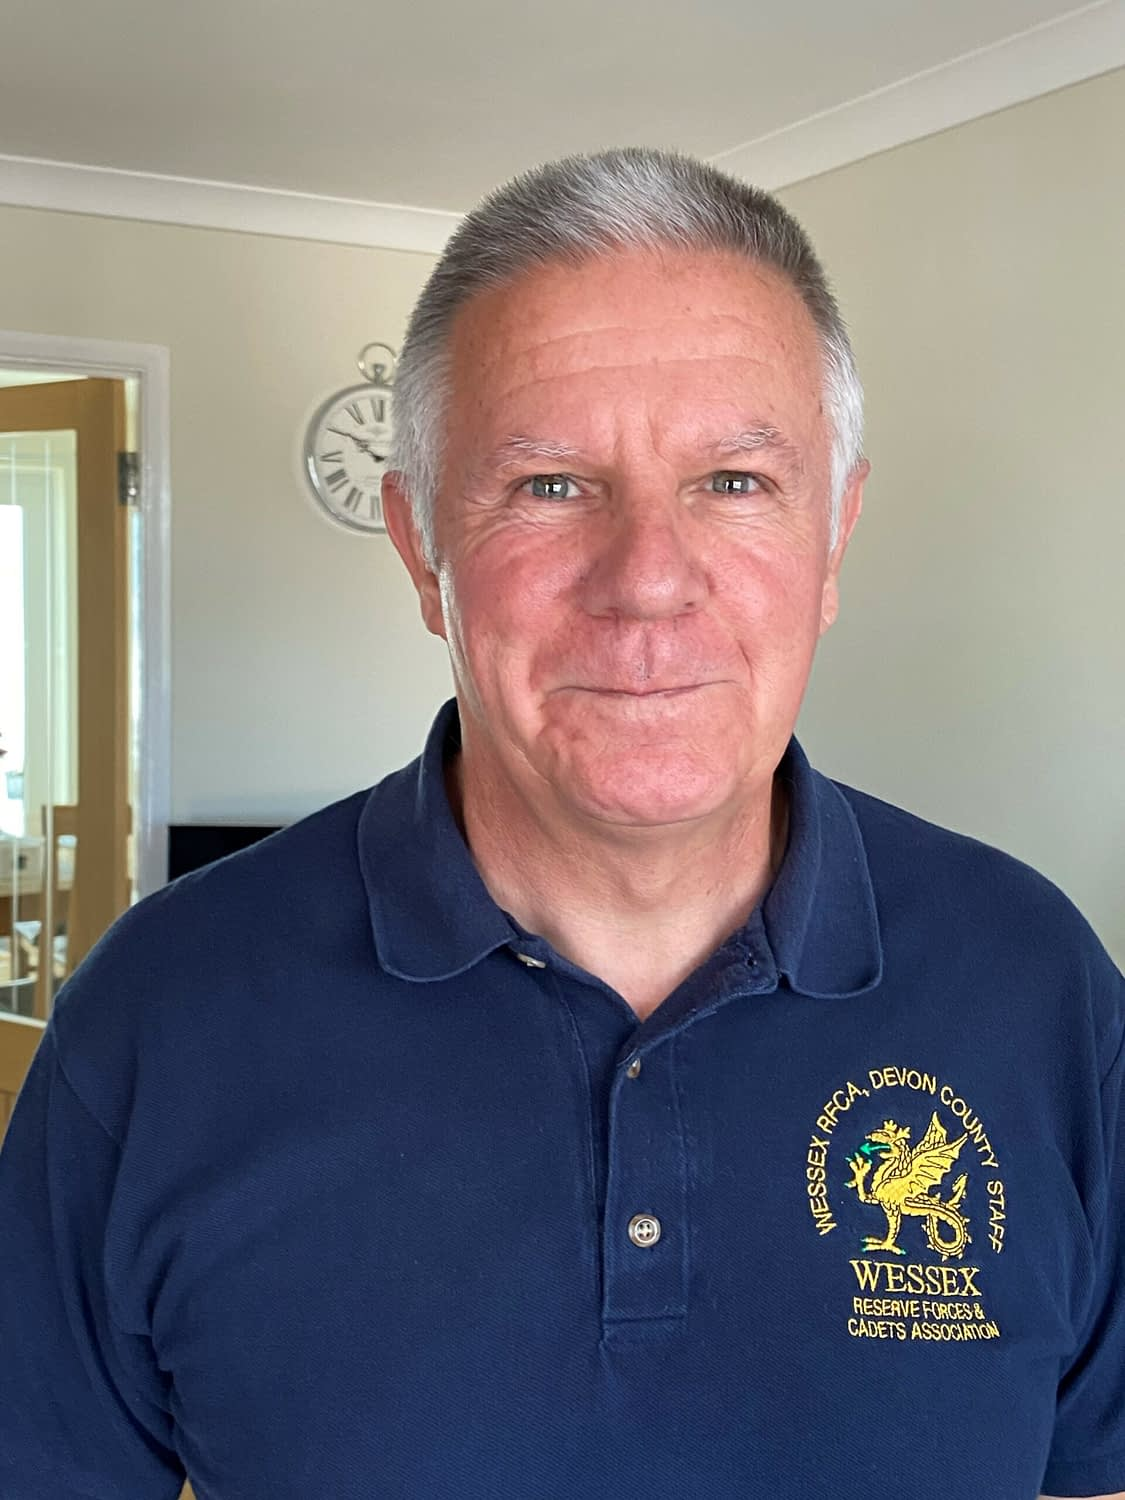 You are currently viewing Royal Navy Veteran Mr Steve Greenley